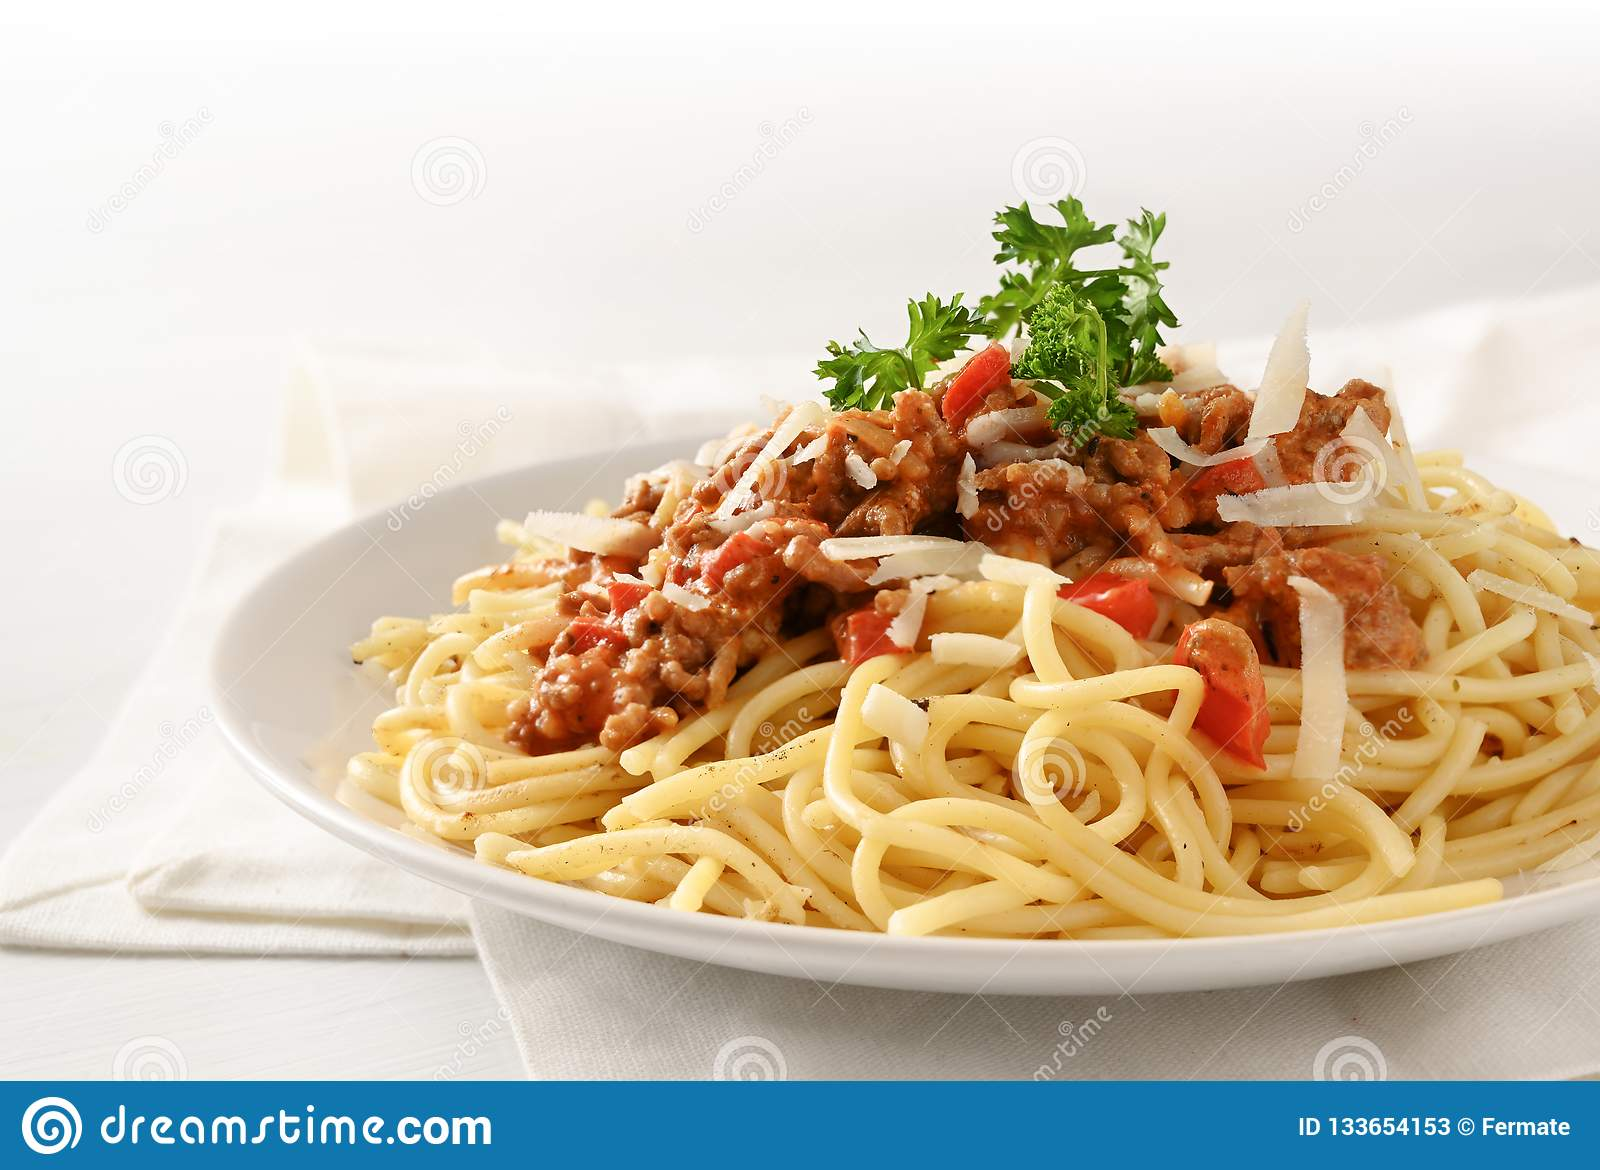 Spaghetti Plate With Sauce From Minced Meat And Tomato Parmesan Stock Image Image Of Food Cooking 133654153